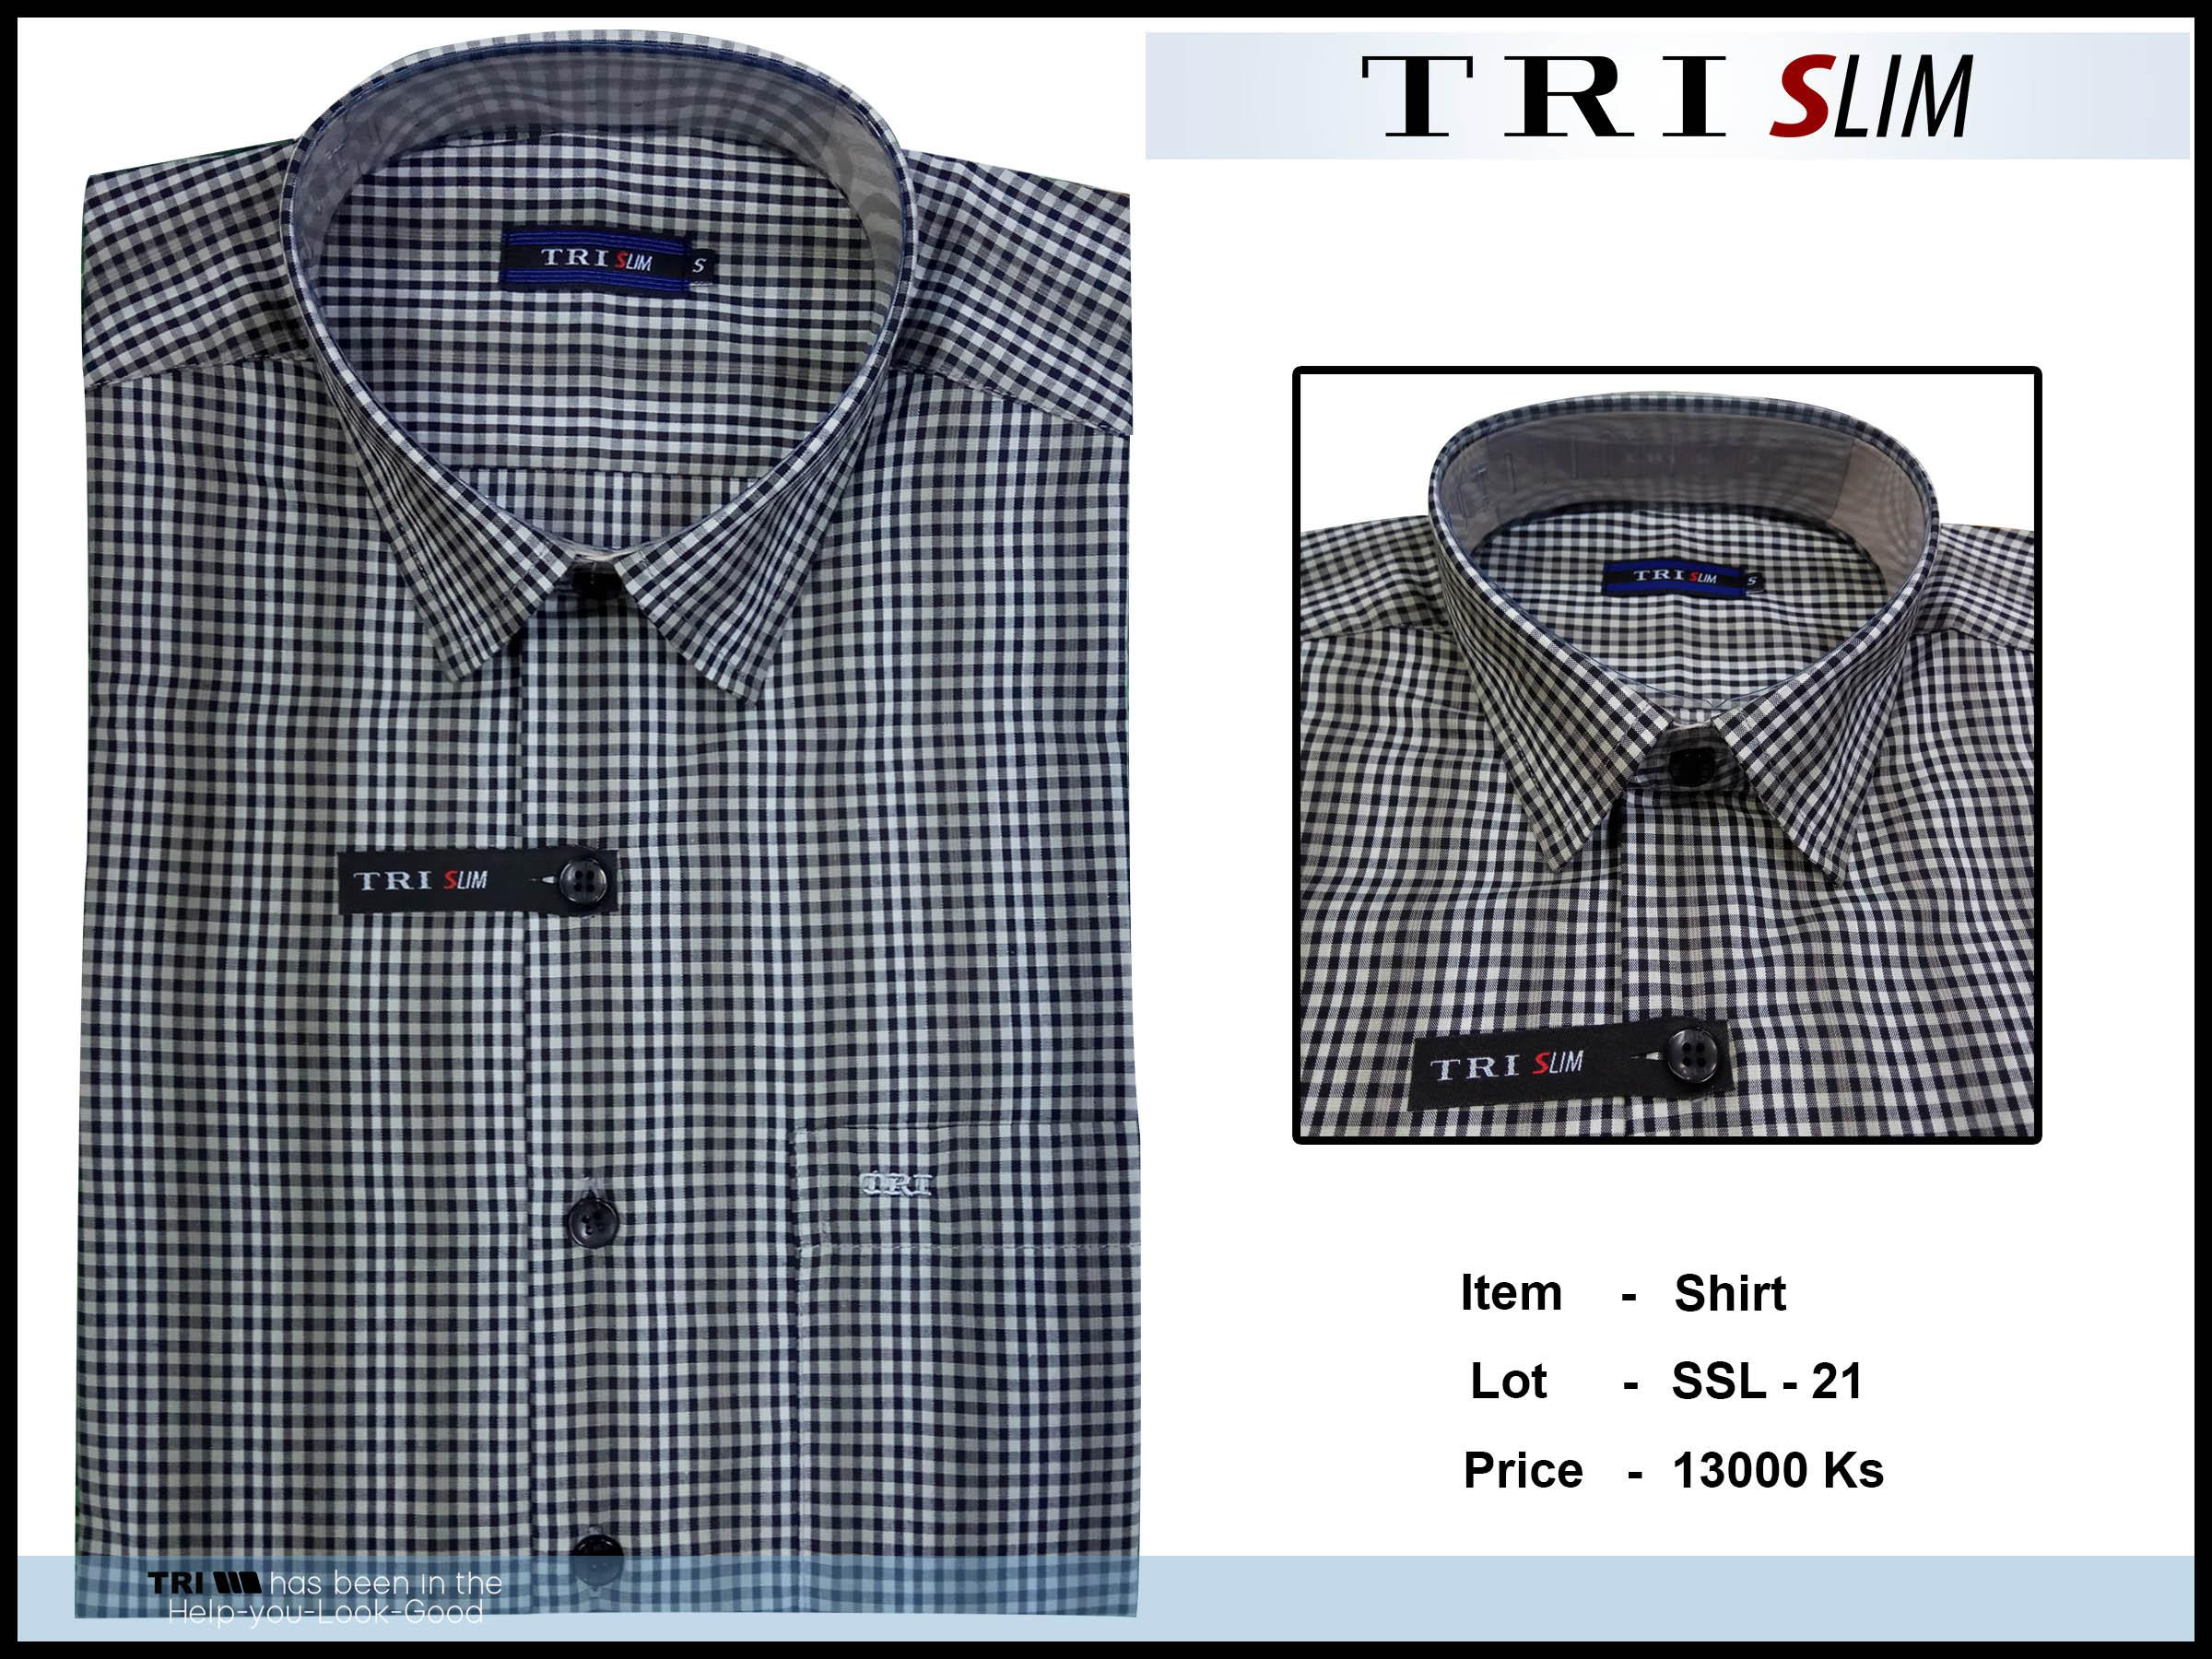 Tri Slim Shirt SSL - 21 - 3